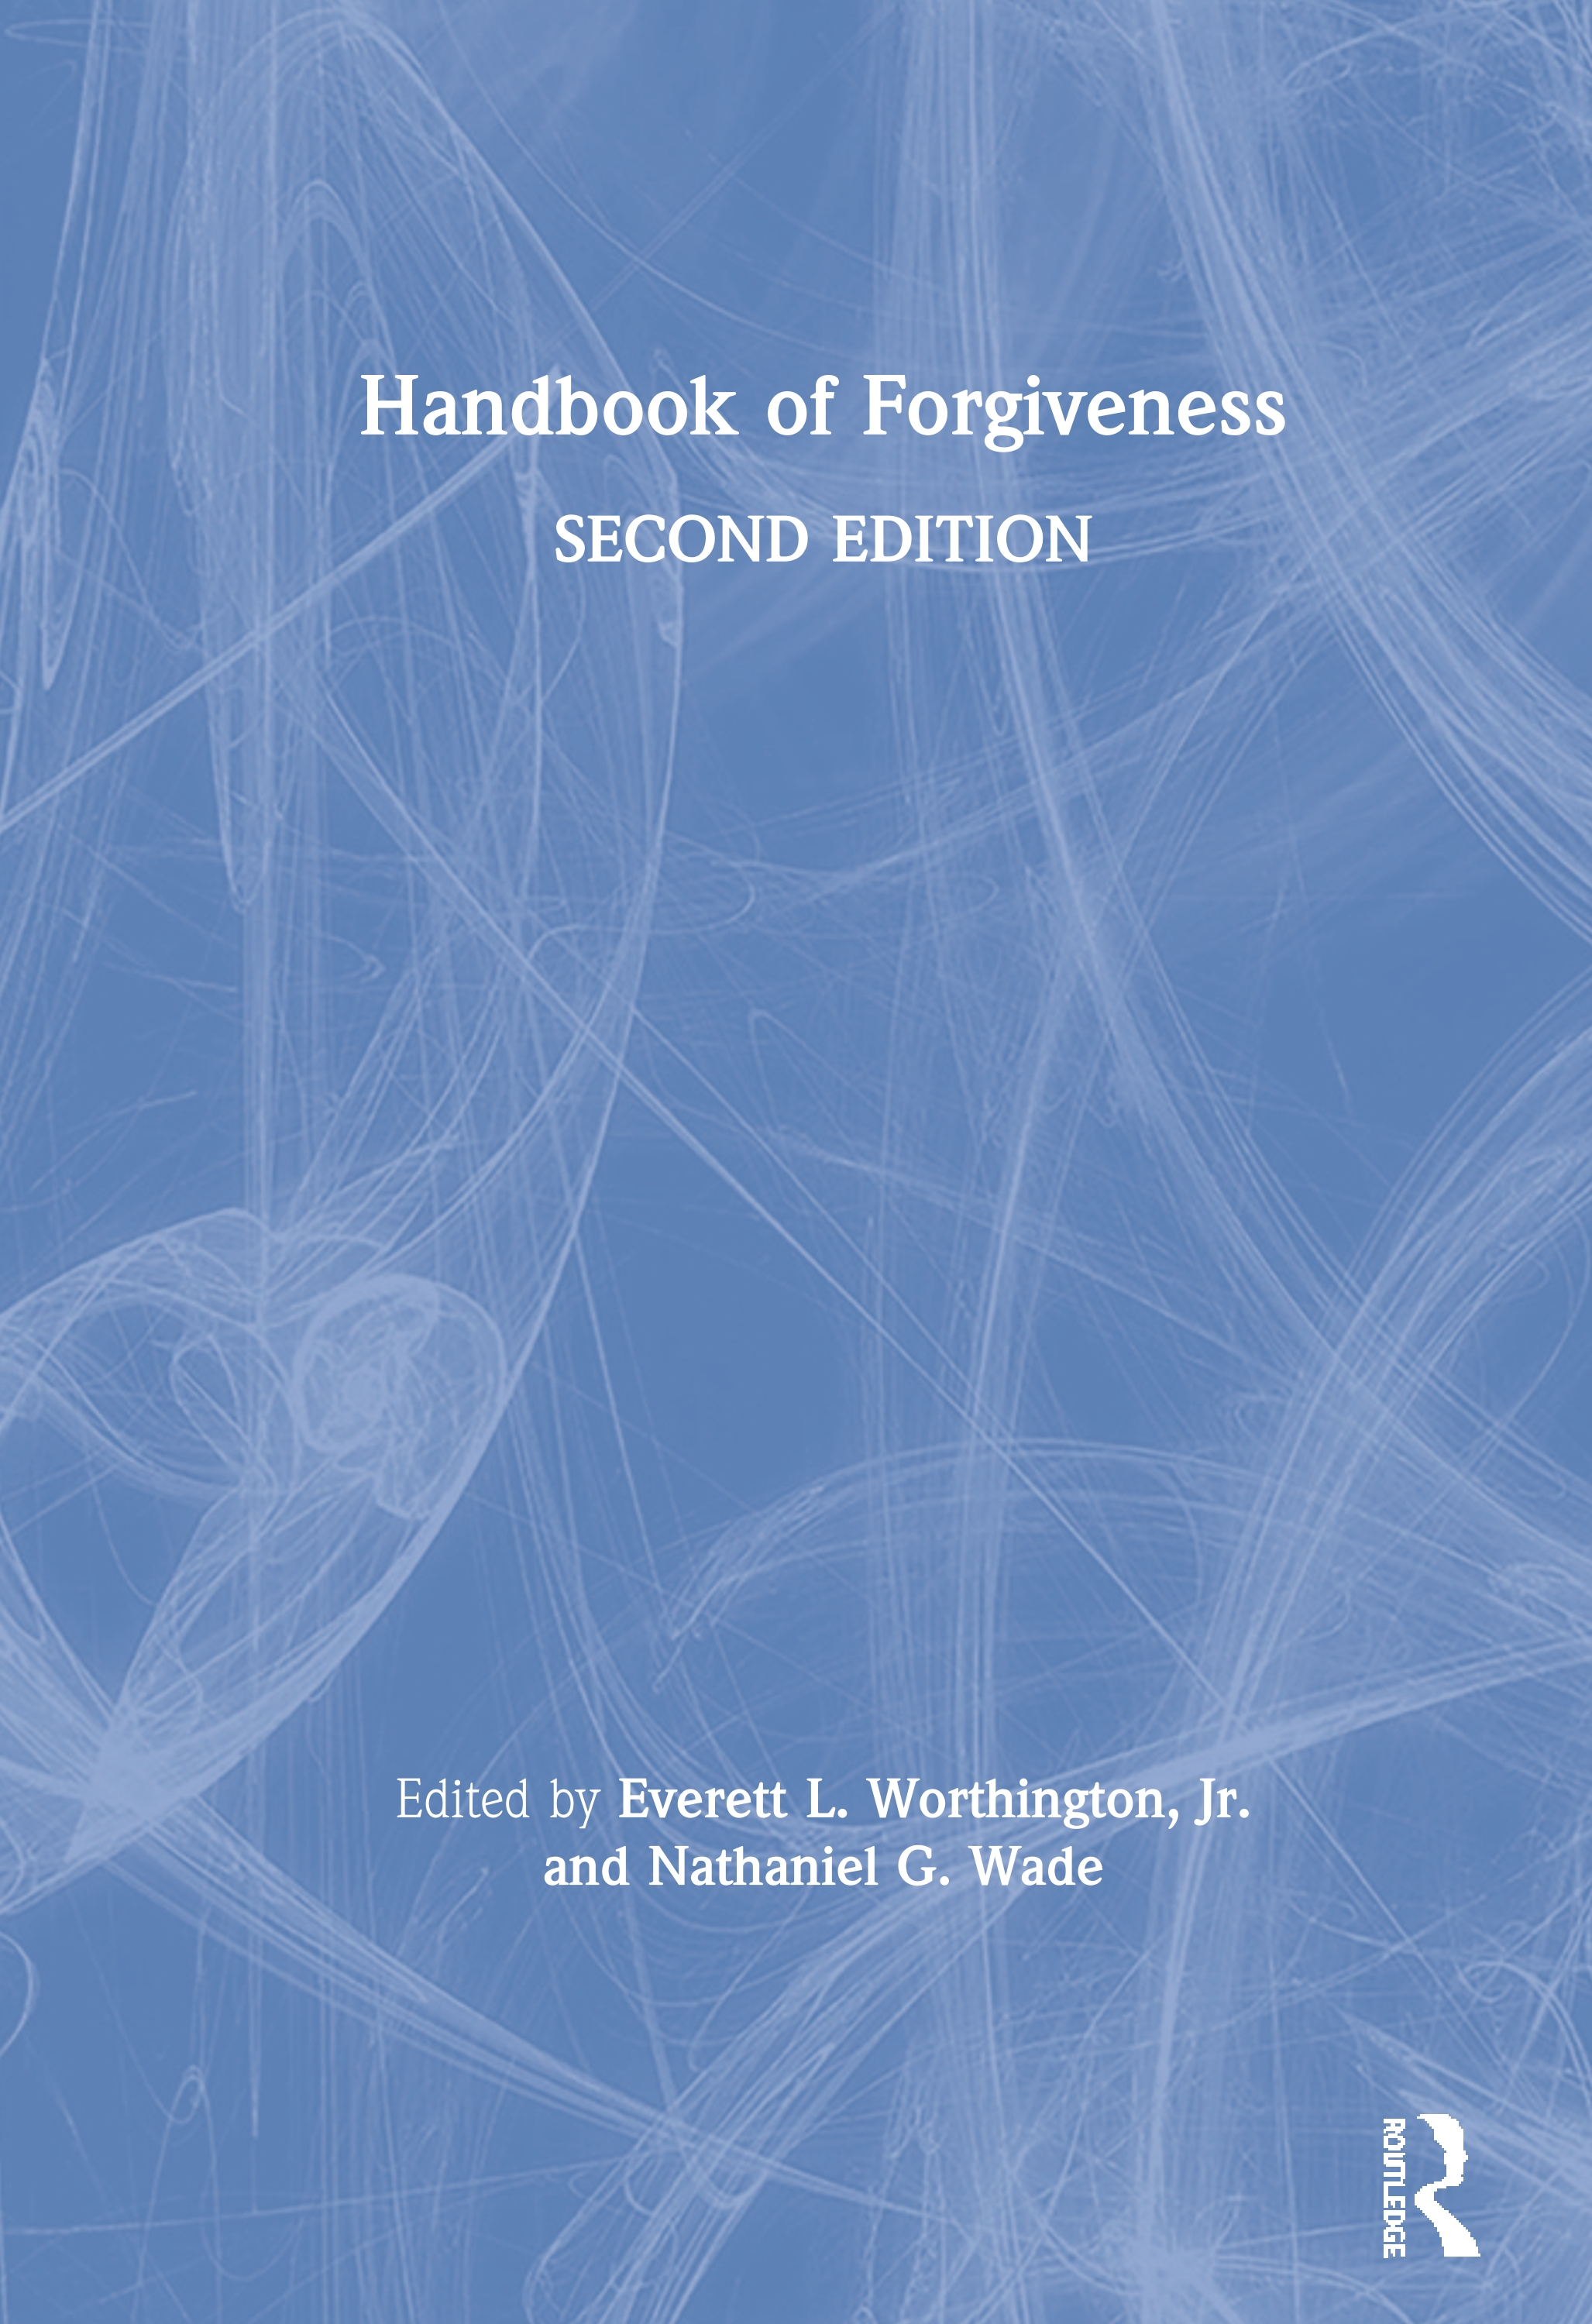 A Review of the Empirical Research Using Enright's Process Model of Interpersonal Forgiveness